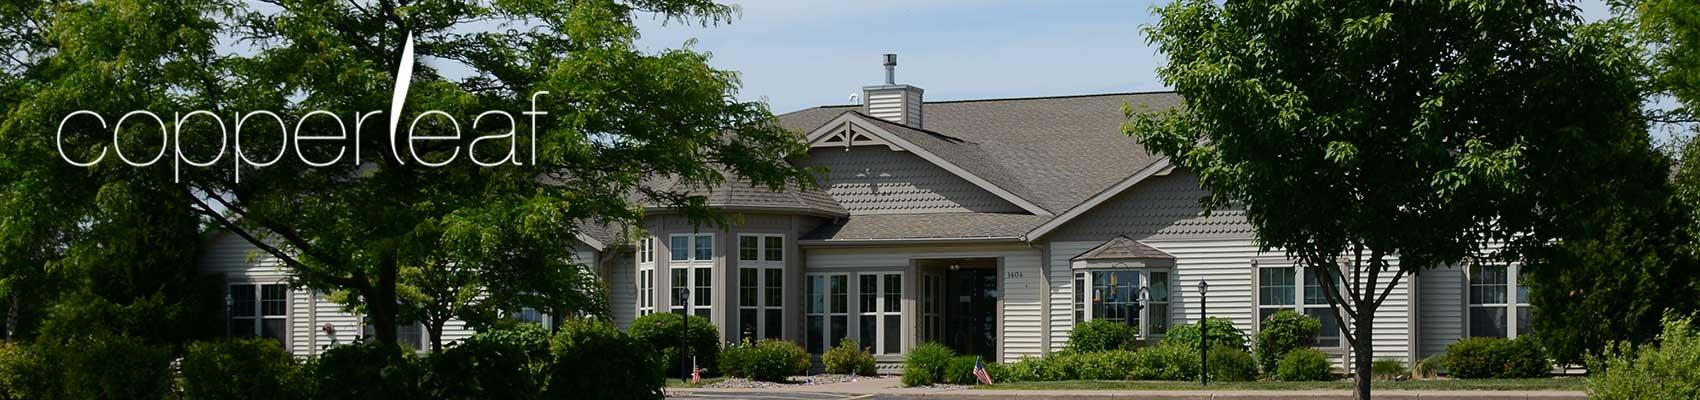 Assisted Living assisted living facilities Knowlton Wisconsin Marathon County